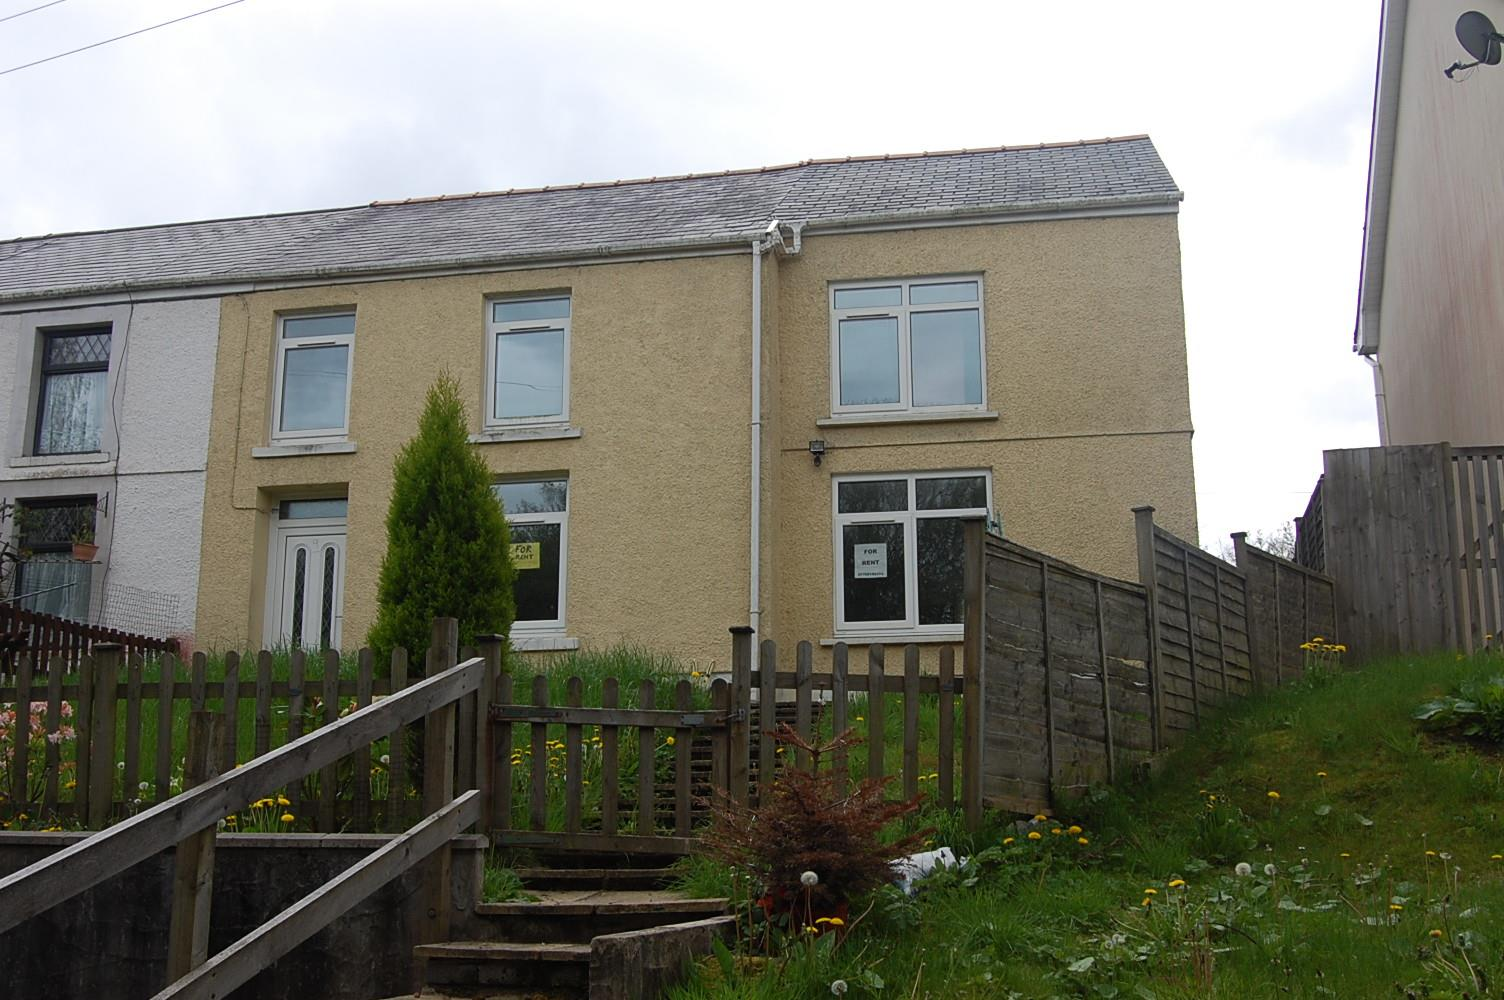 9 Upper Station Road, Garnant, Ammanford, Carmarthenshire